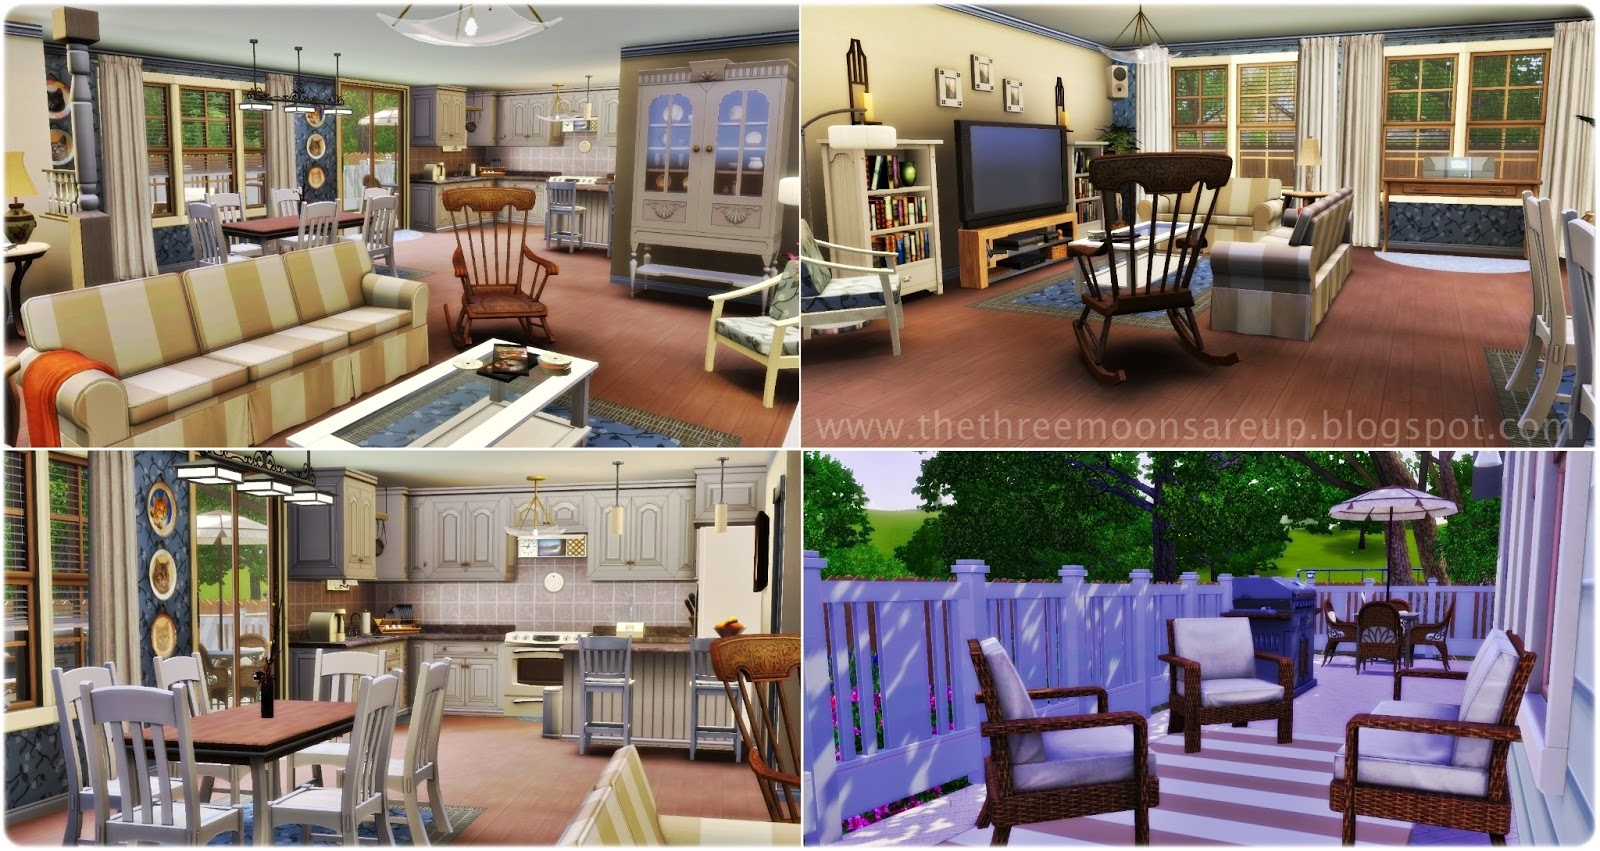 My sims 3 blog sims 3 collage wall decor by michelleab - Download At Home Is Where The Heart Is